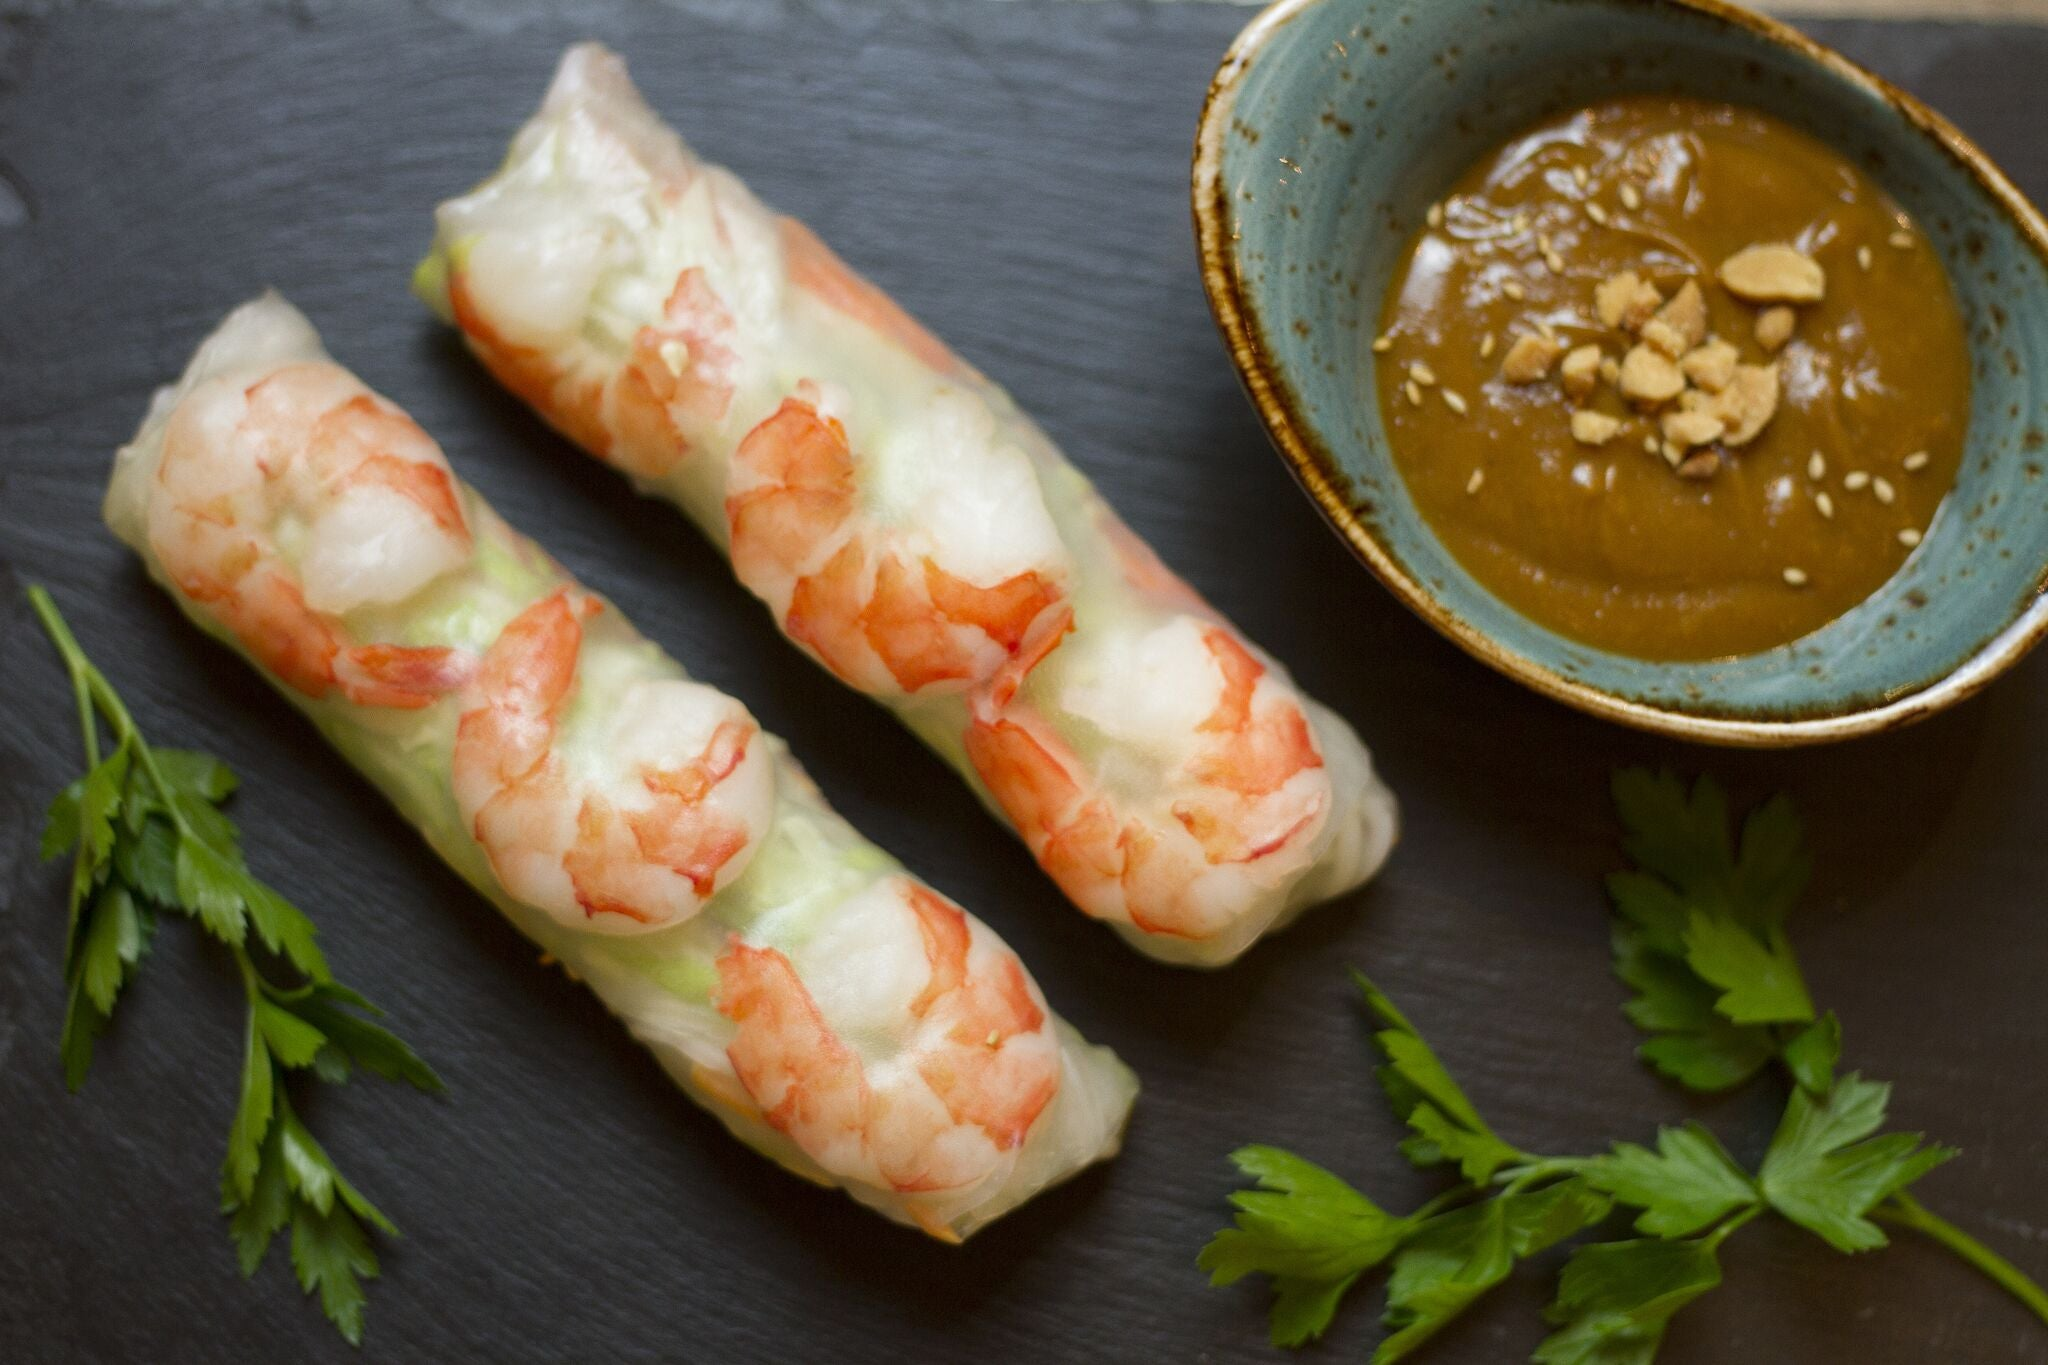 25. SHRIMP ROLL (SOMMERROLLEN)